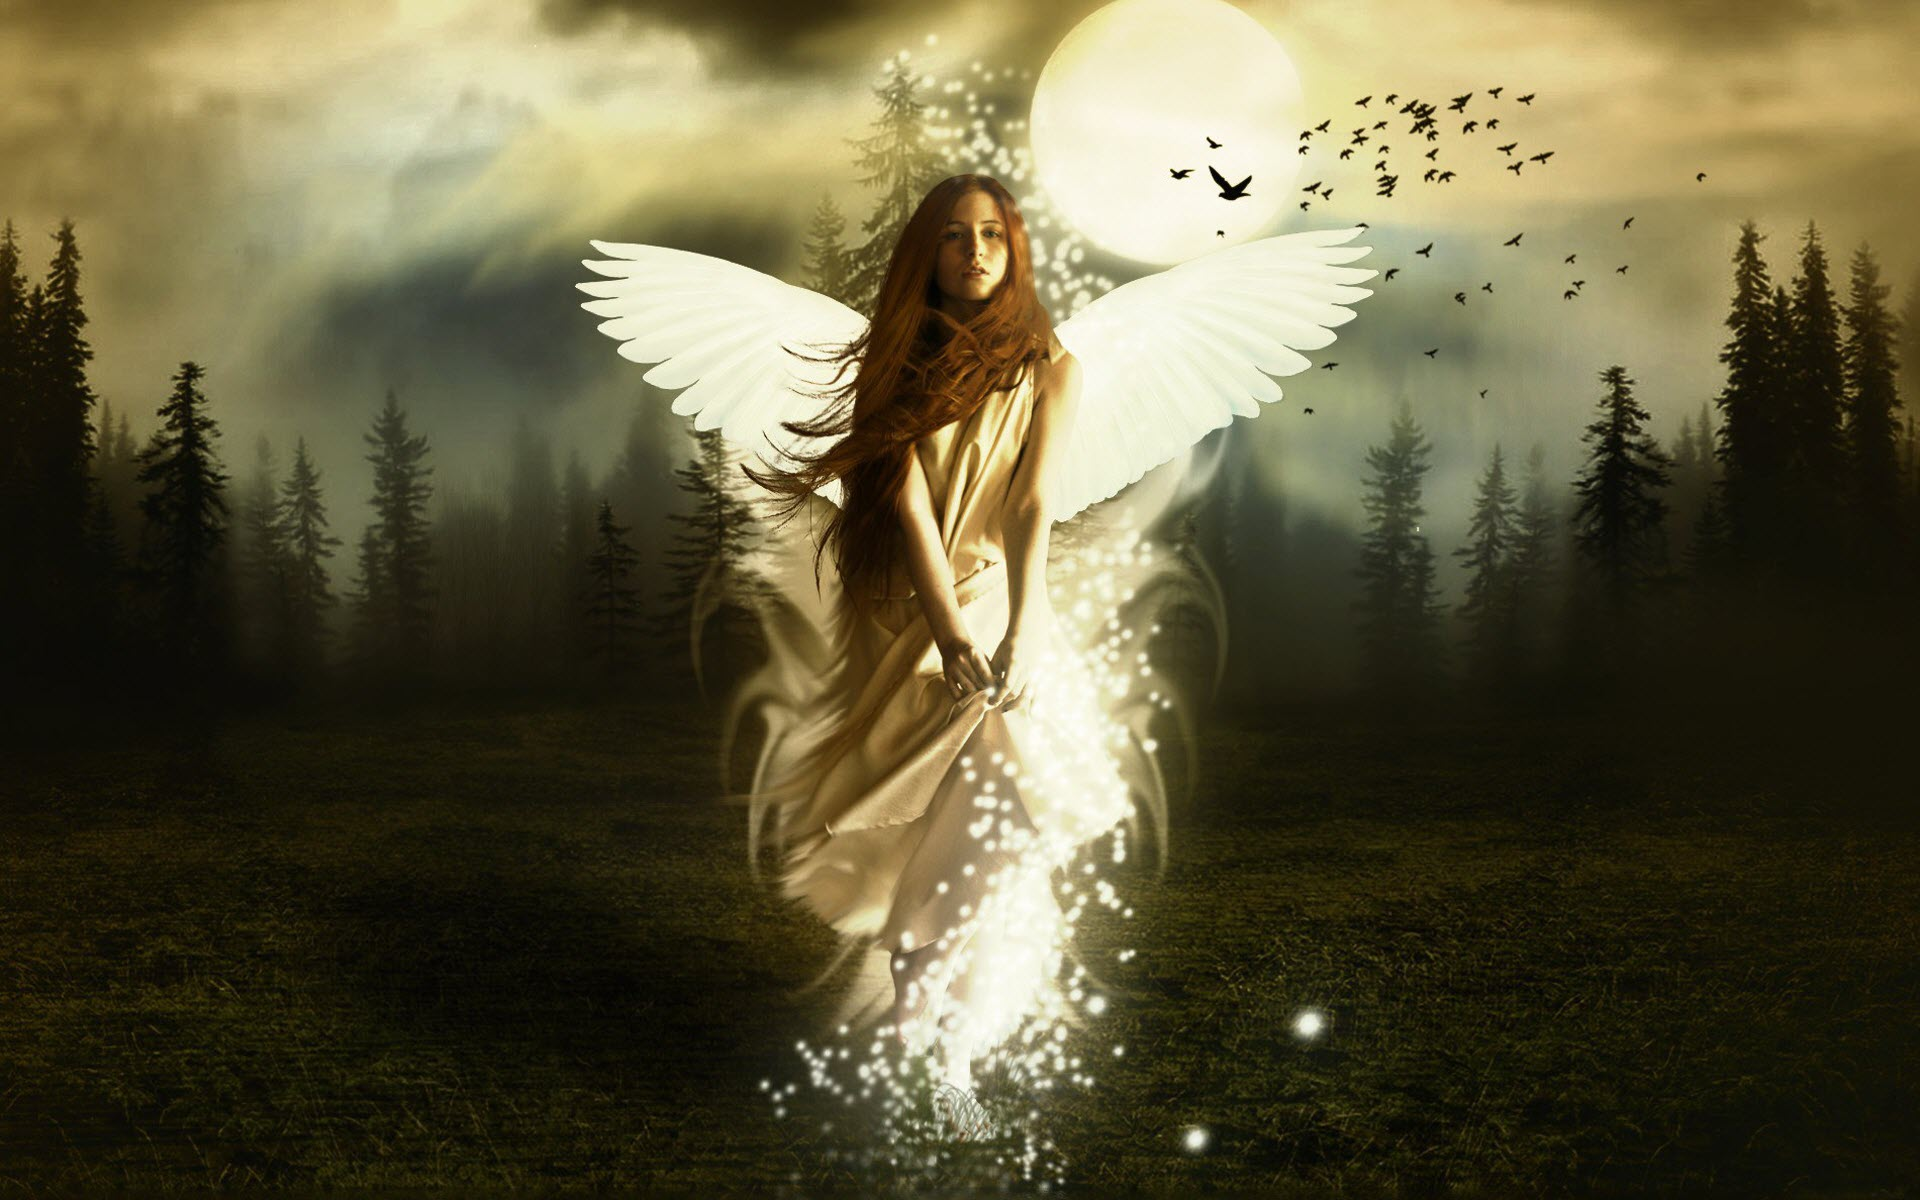 Free Wallpaper Of A Angel Girl In Forest | Free Wallpaper World